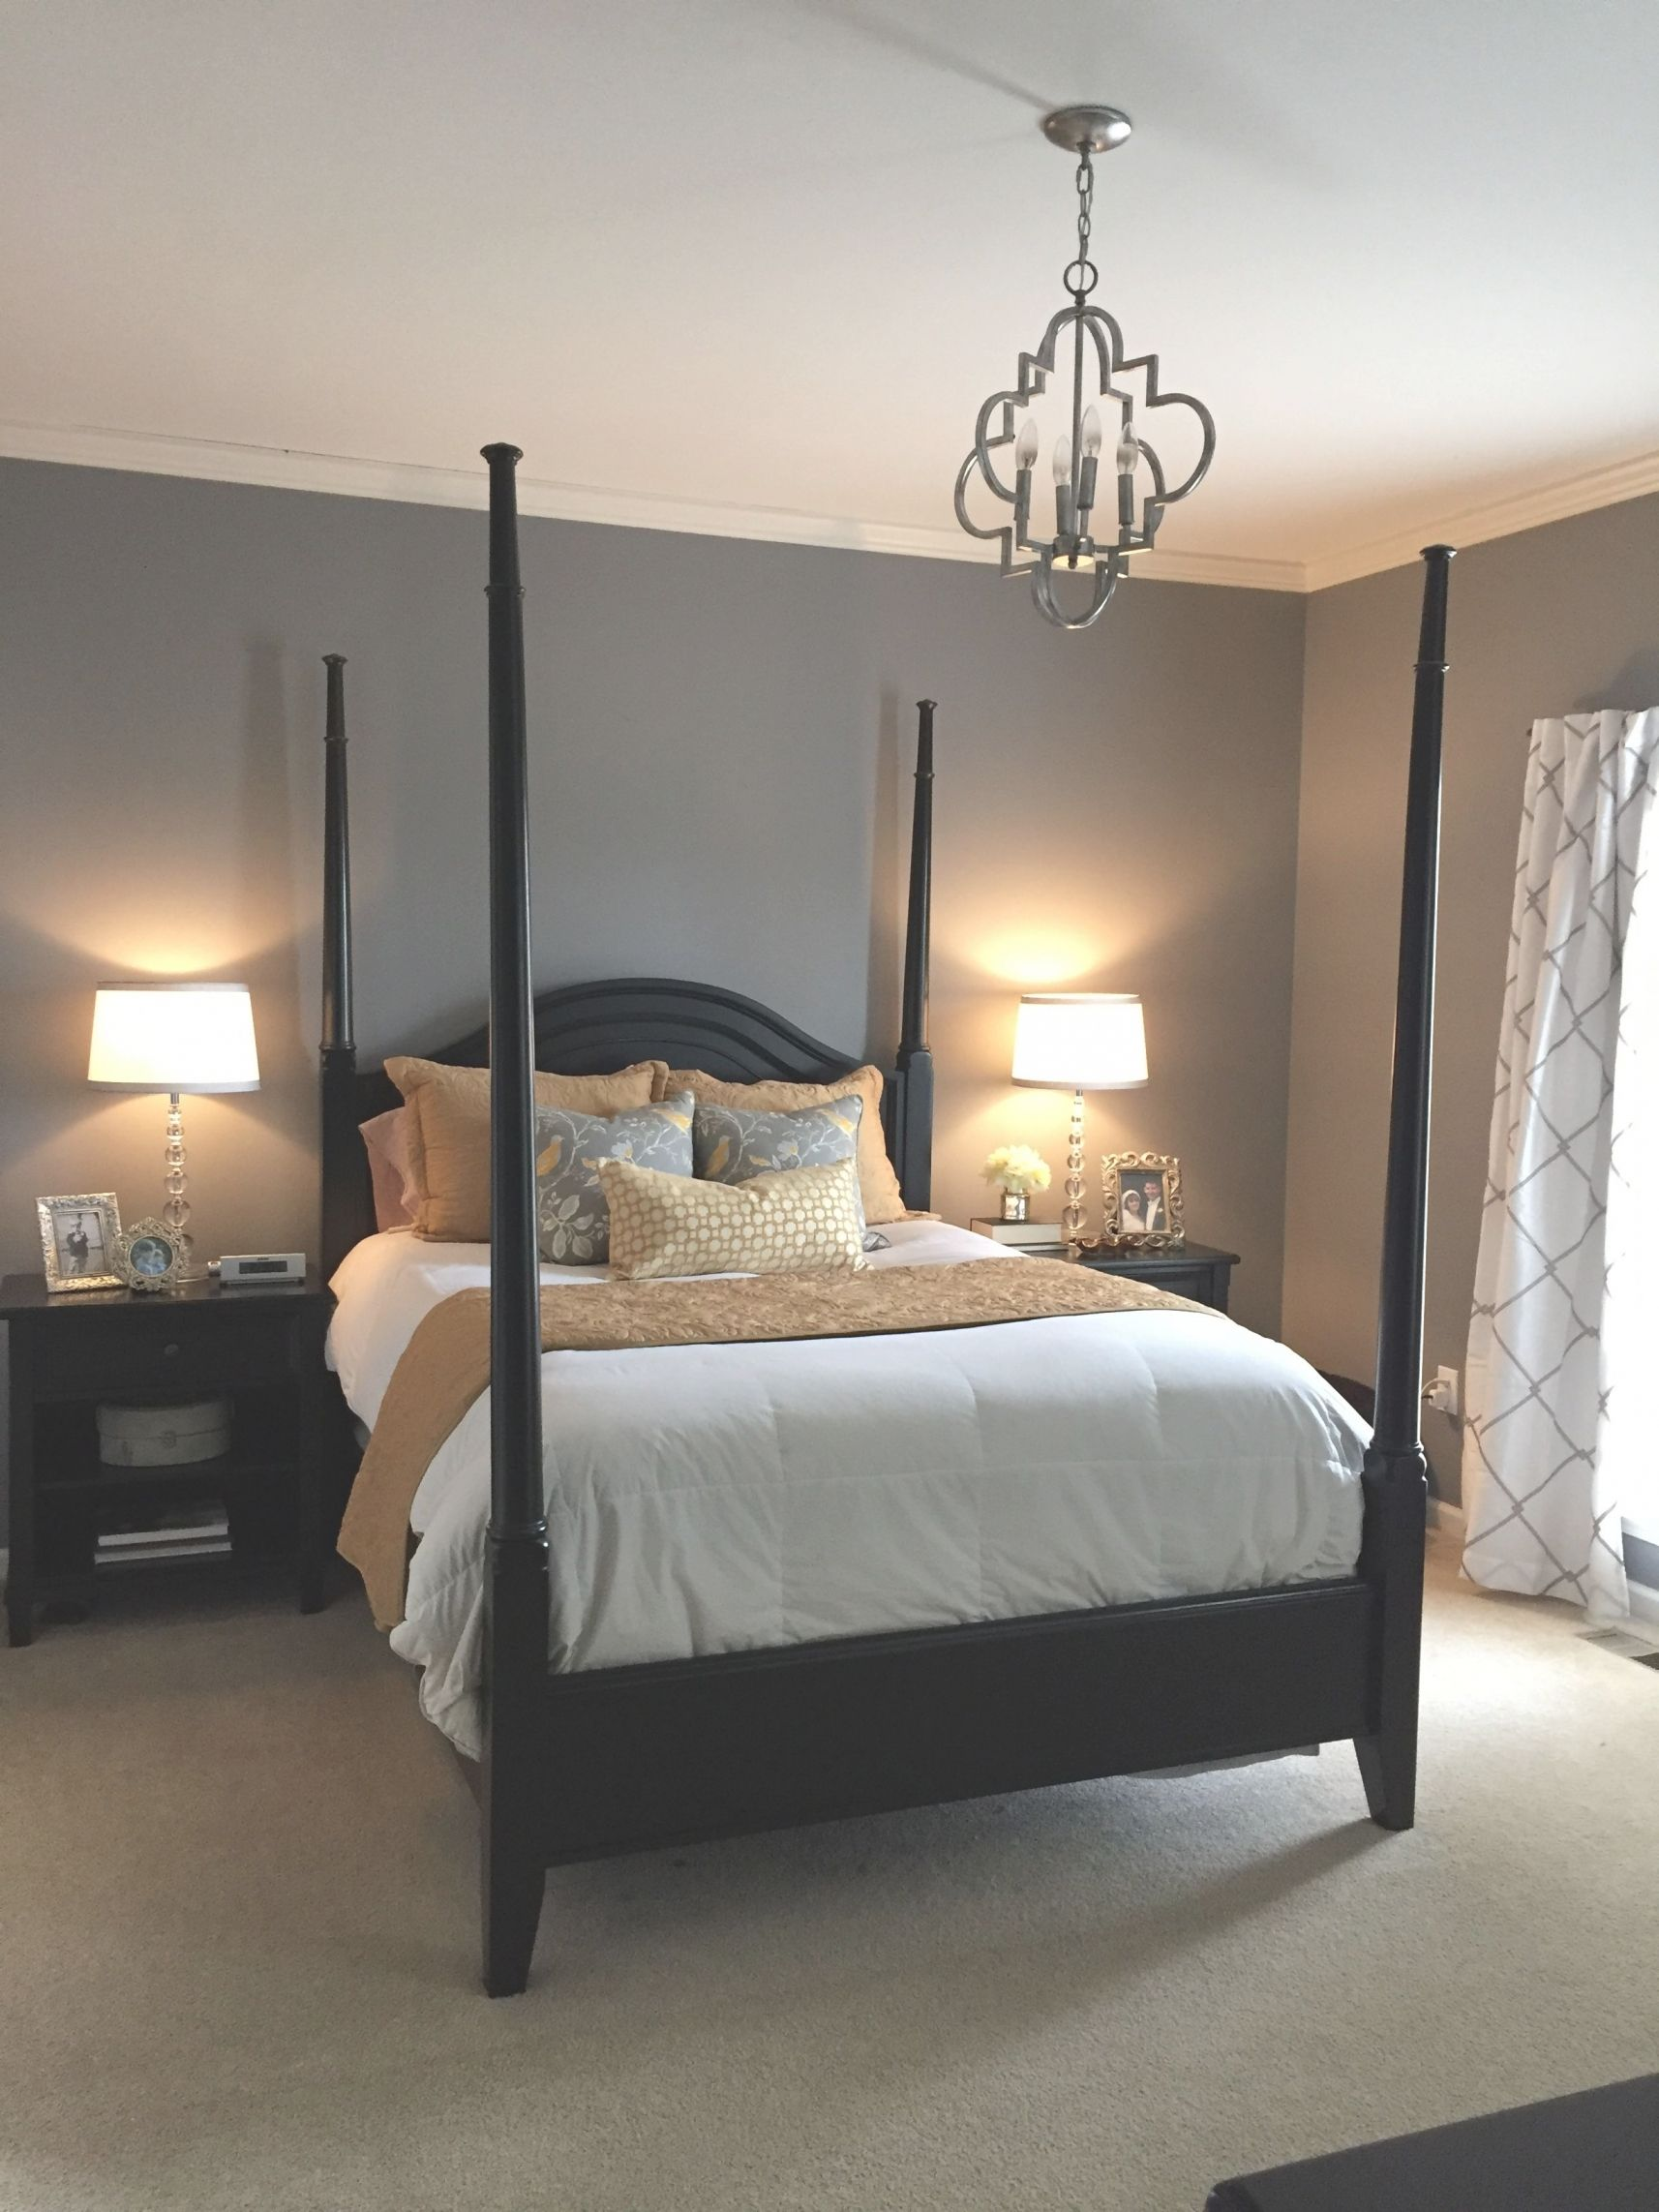 4 + Valspar Paint Colors For Bedrooms pleasing to the eye That Can